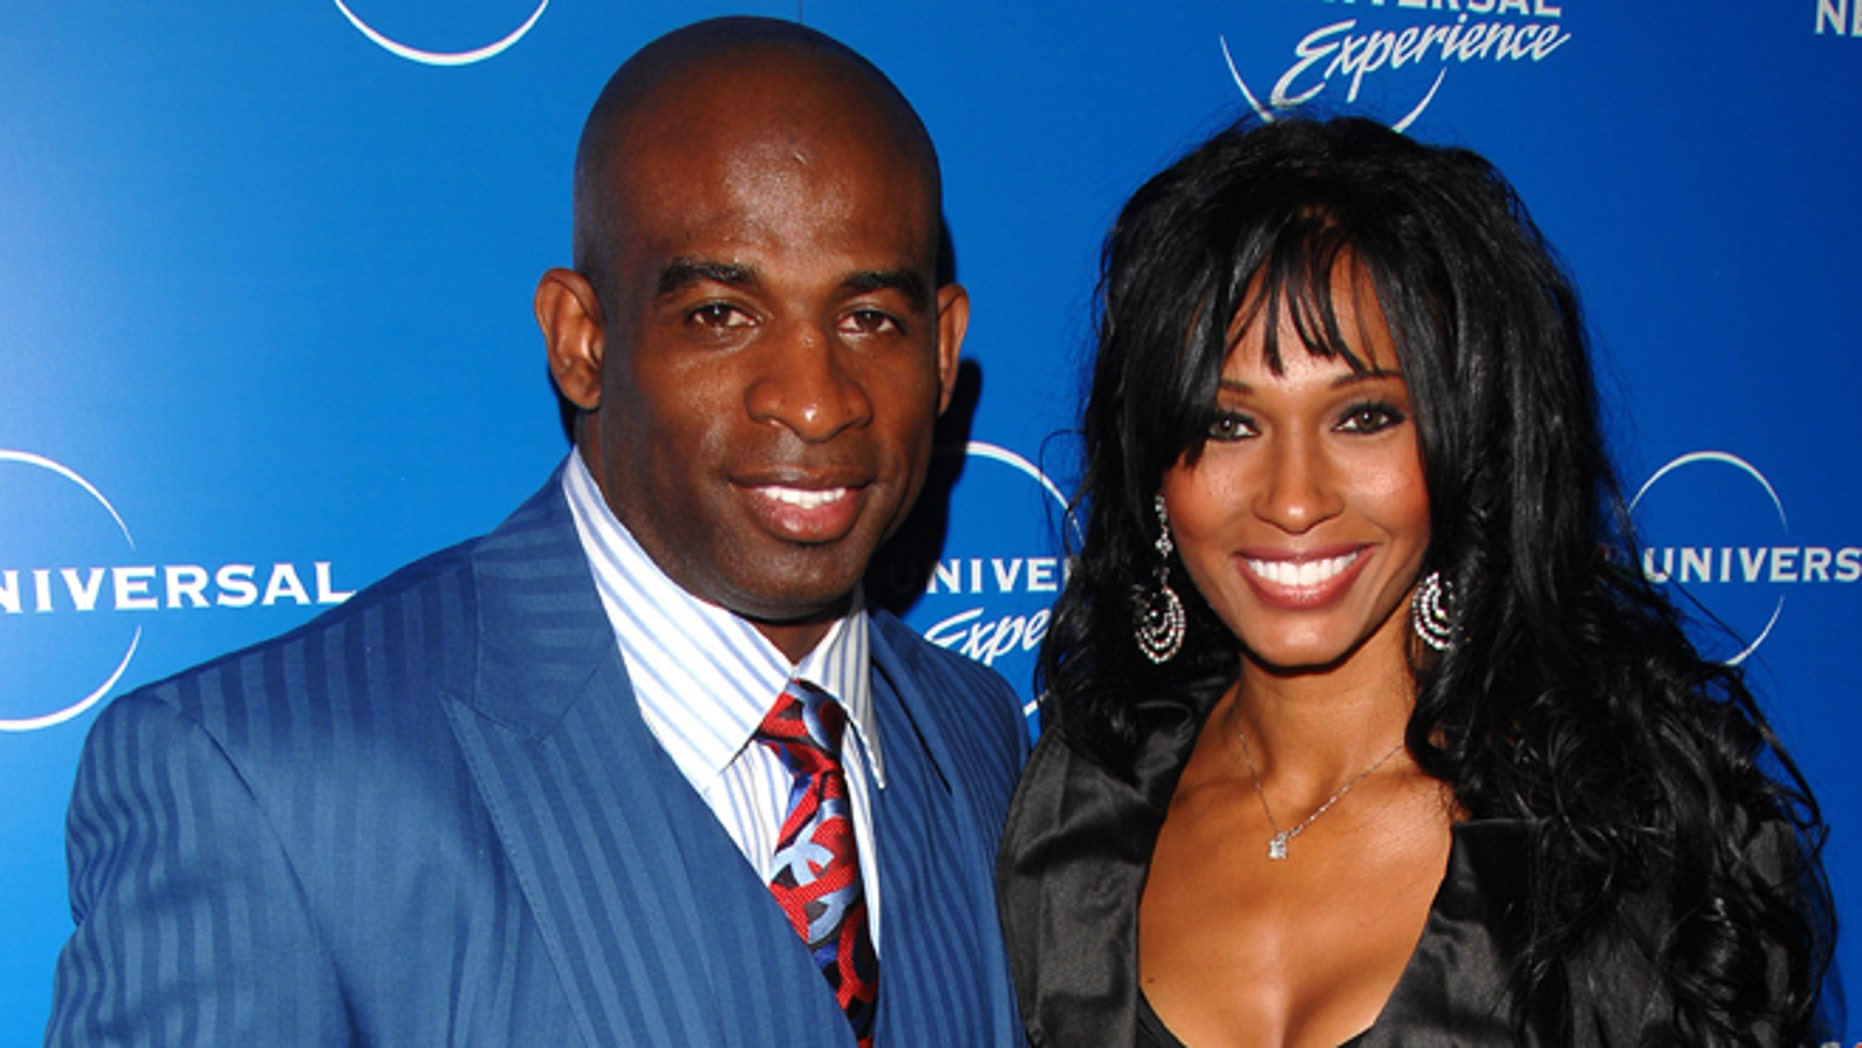 May 12, 2008: Deion Sanders and Pilar Sanders attend the NBC Universal Experience at Rockefeller Center in New York.